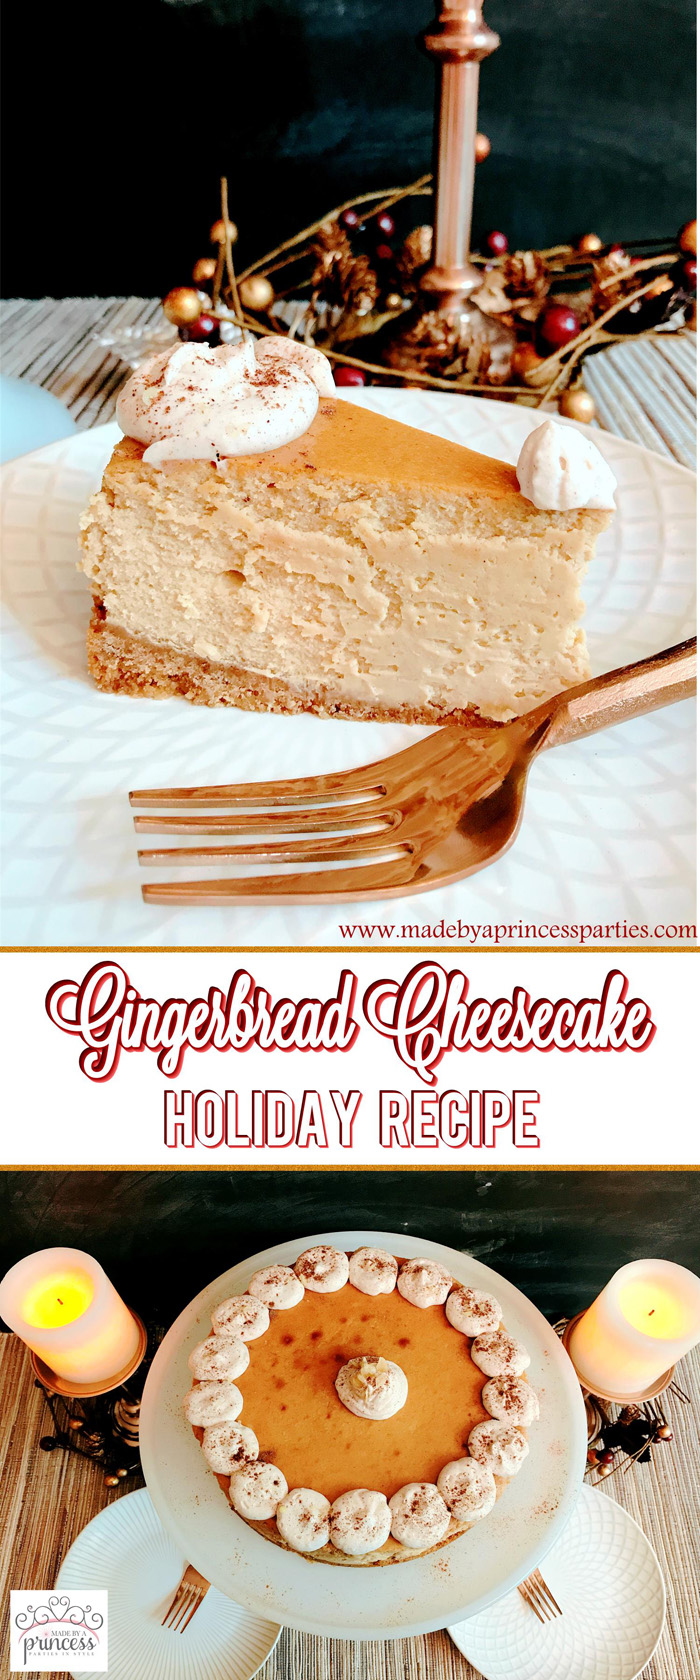 Gingerbread Cheesecake Dessert Recipe Pin for Later Made by a Princess #gingerbreadcheesecake